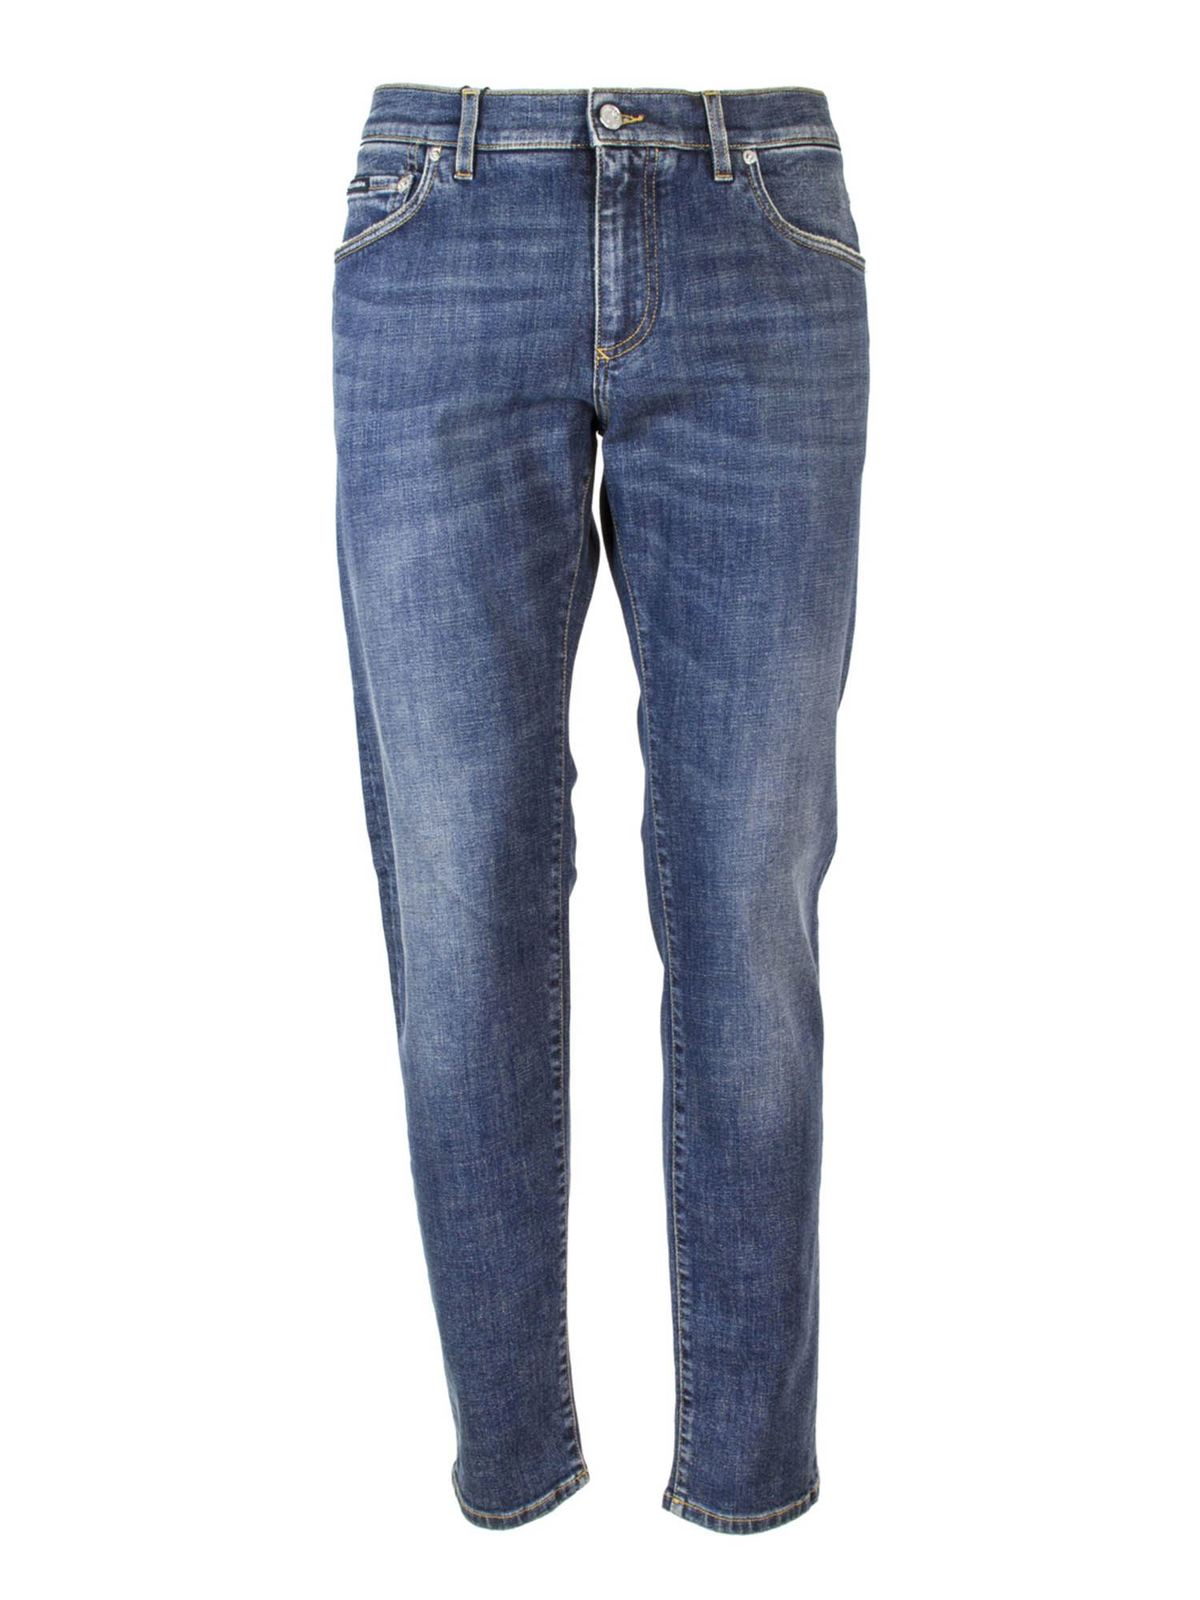 DOLCE & GABBANA SLIM FIT JEANS IN BLUE